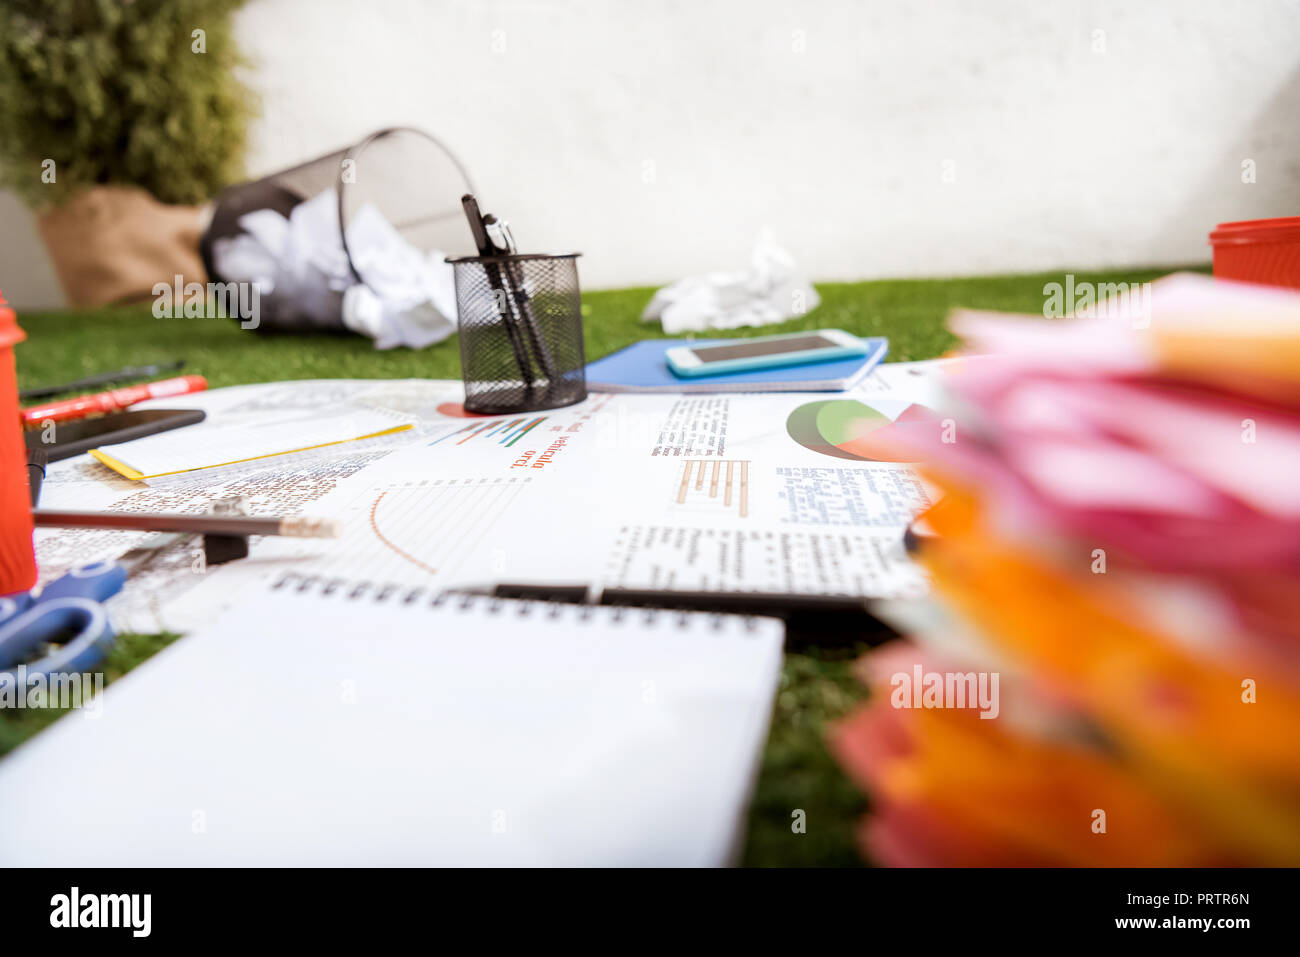 heap of business objects and office supplies laying on green grass carpet at office, business establishment - Stock Image